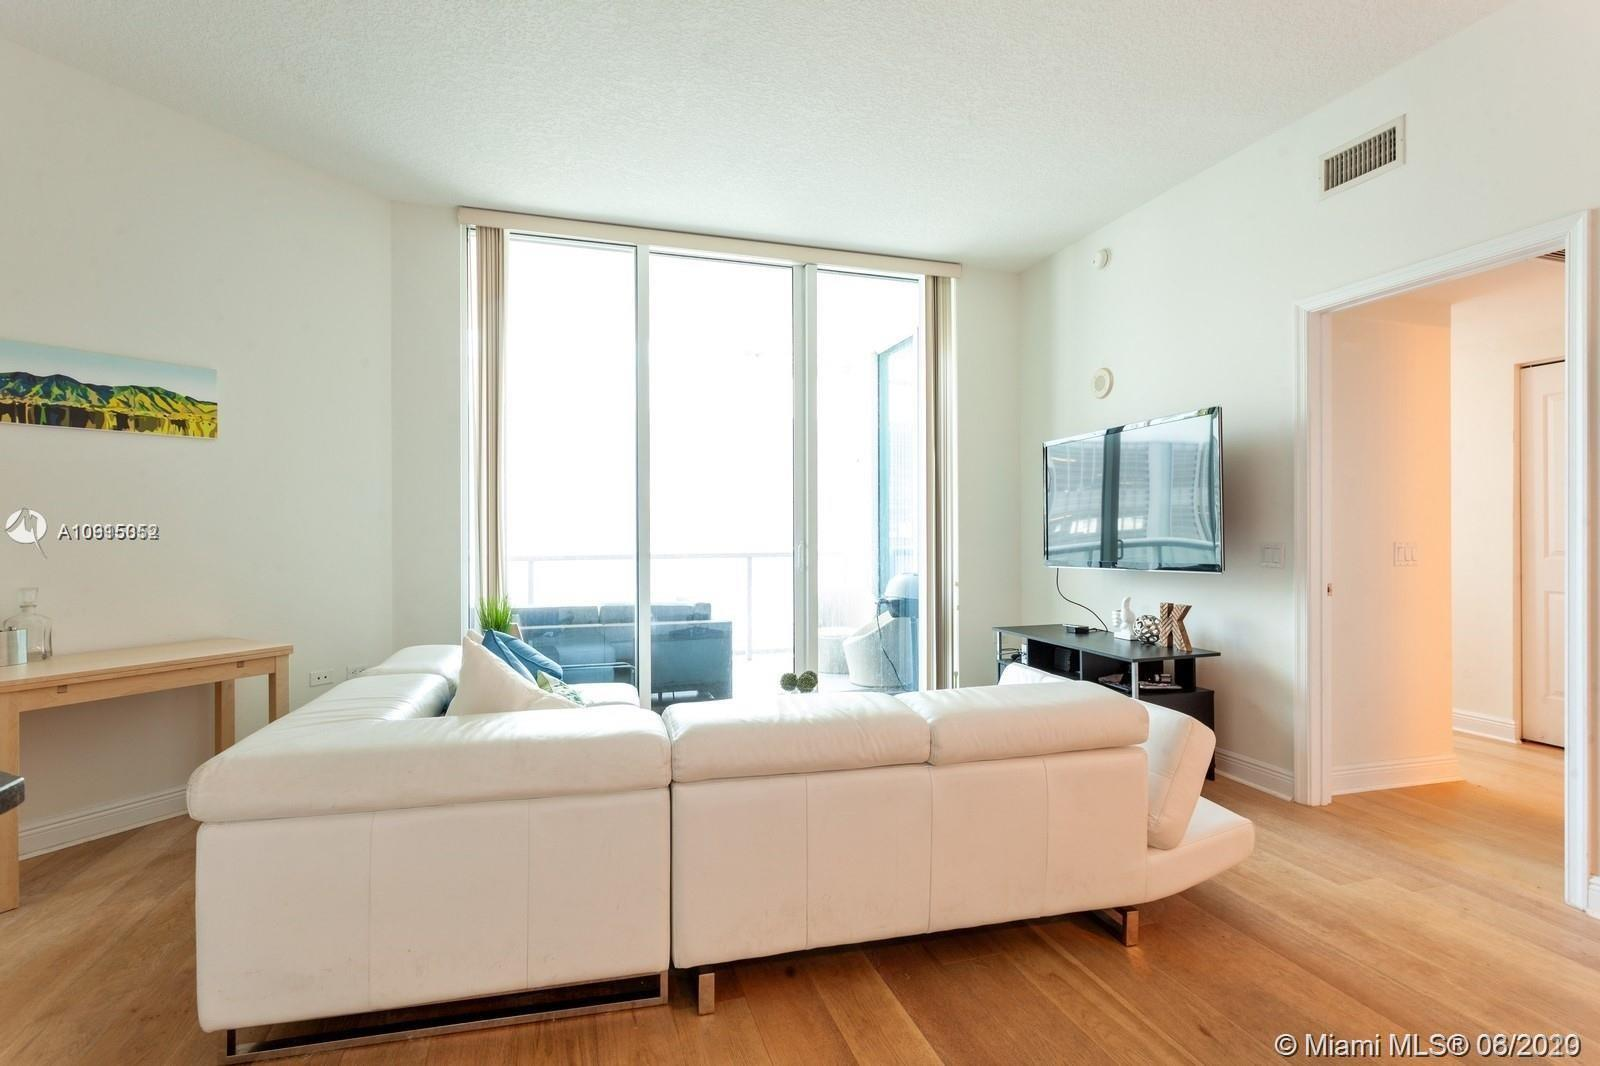 Welcome to the absolute best deal in Edgewater and Downtown Miami for a first time home buyer or inv